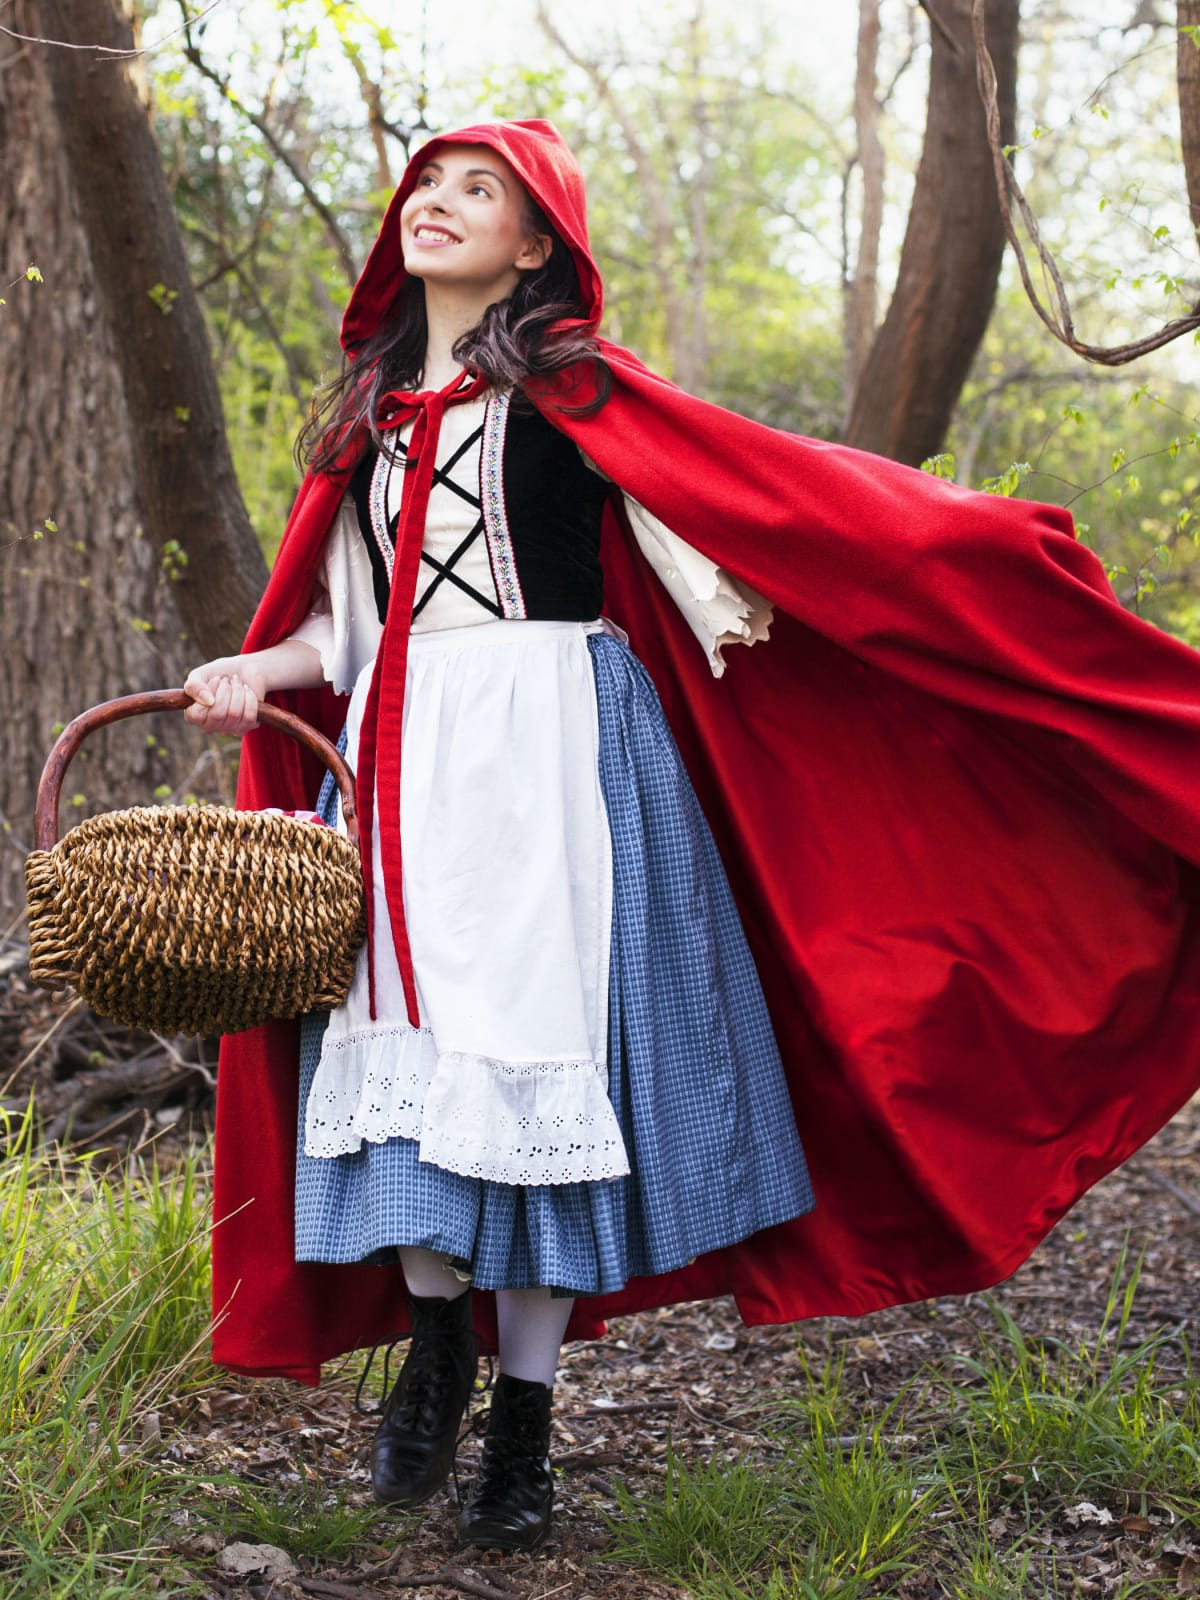 Casa Mañana presents Red Riding Hood